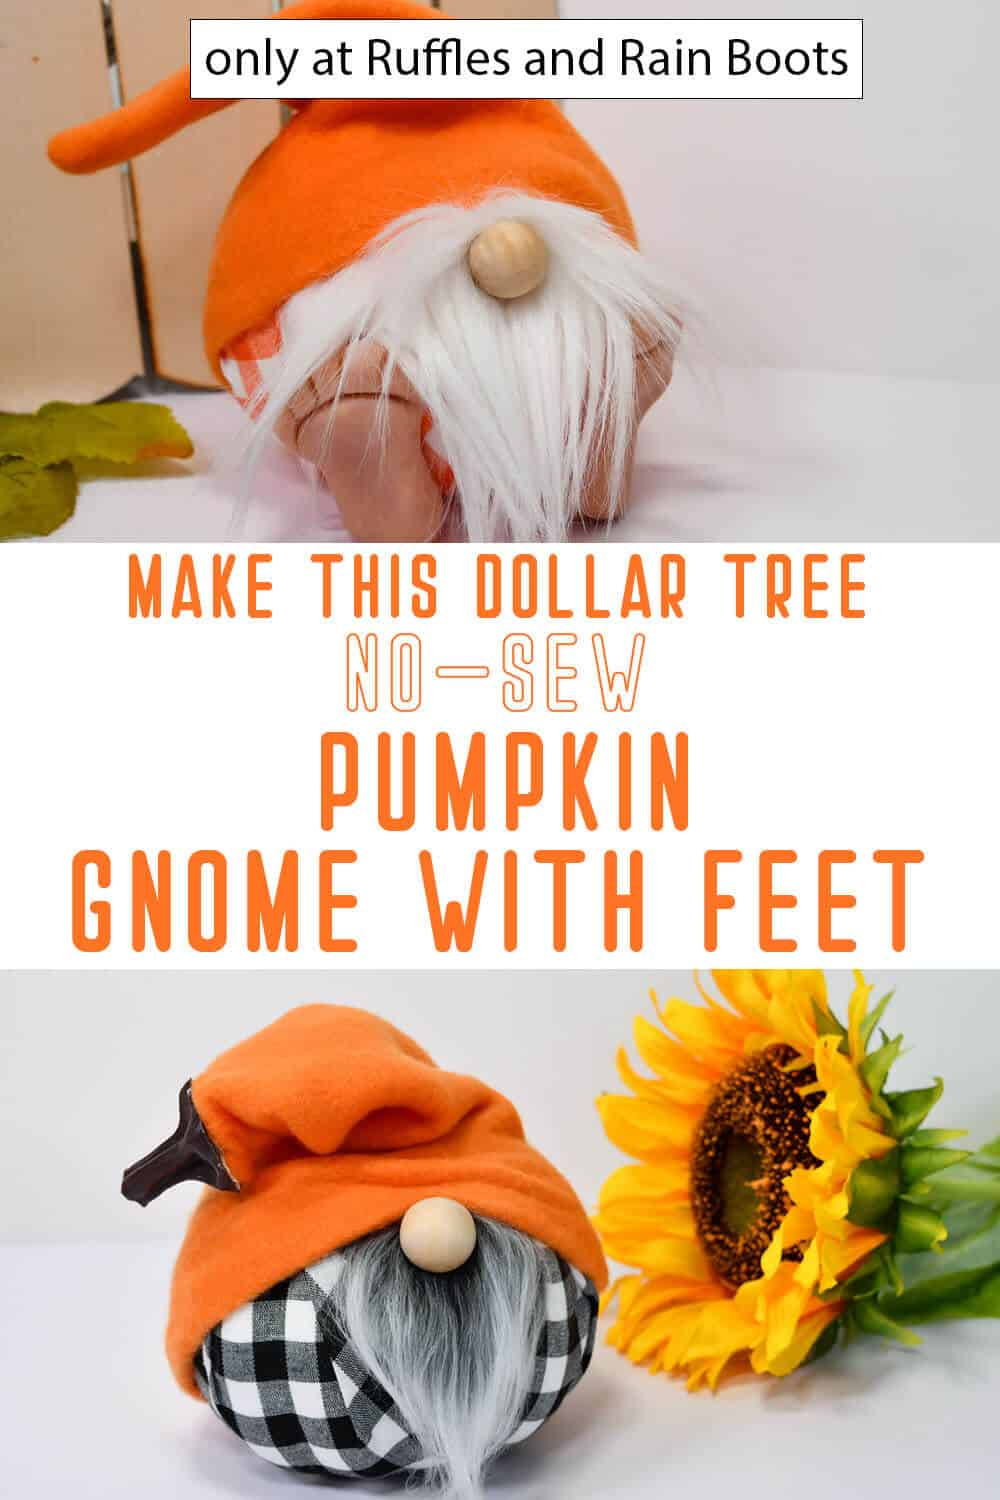 photo collage of dollar tree pumpkin gnome pattern with feet with text which reads make this dollar tree no-sew pumpkin gnome with feet